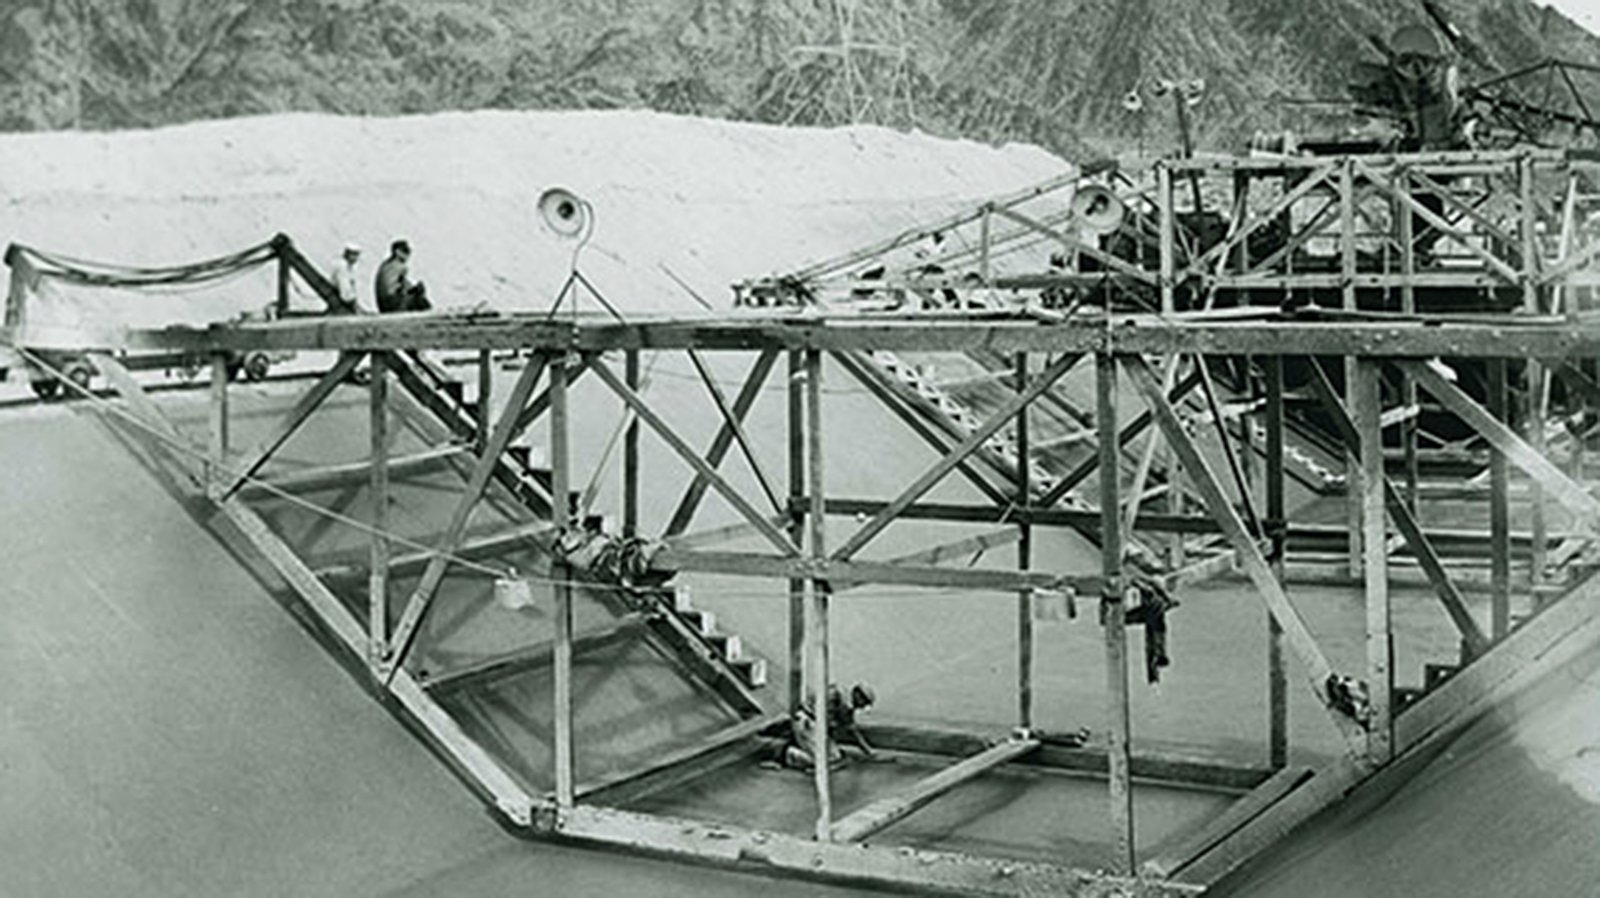 Early construction of the Colorado River Aqueduct, circa 1935